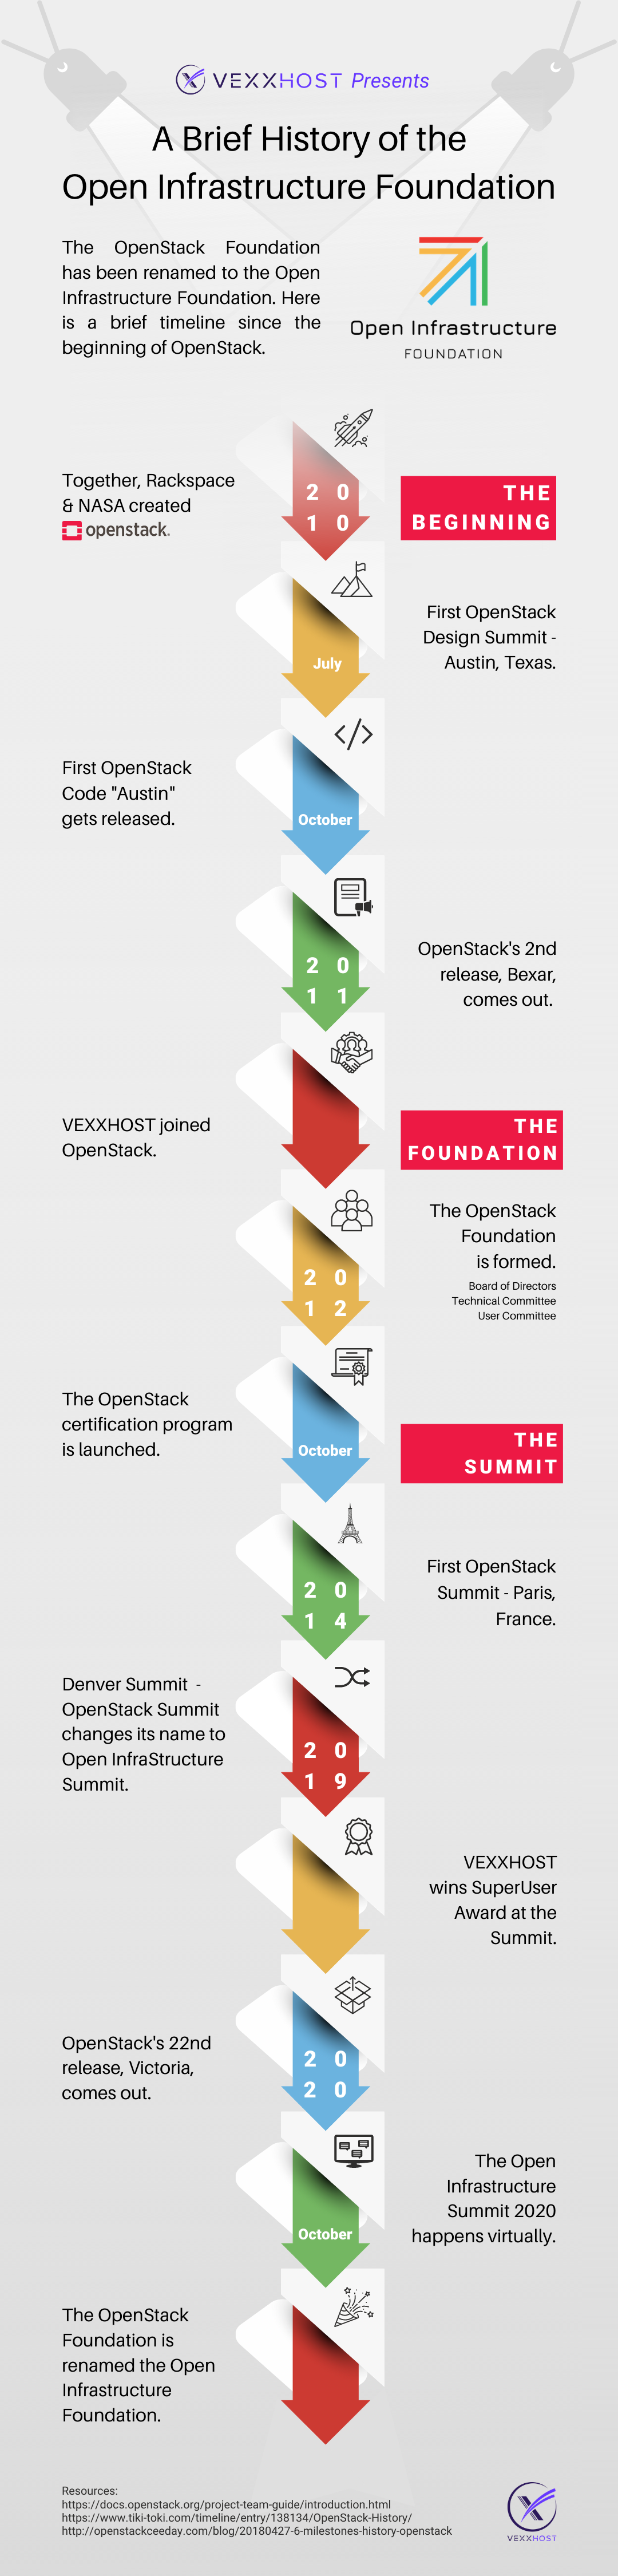 A Brief History of the Open Infrastructure Foundation